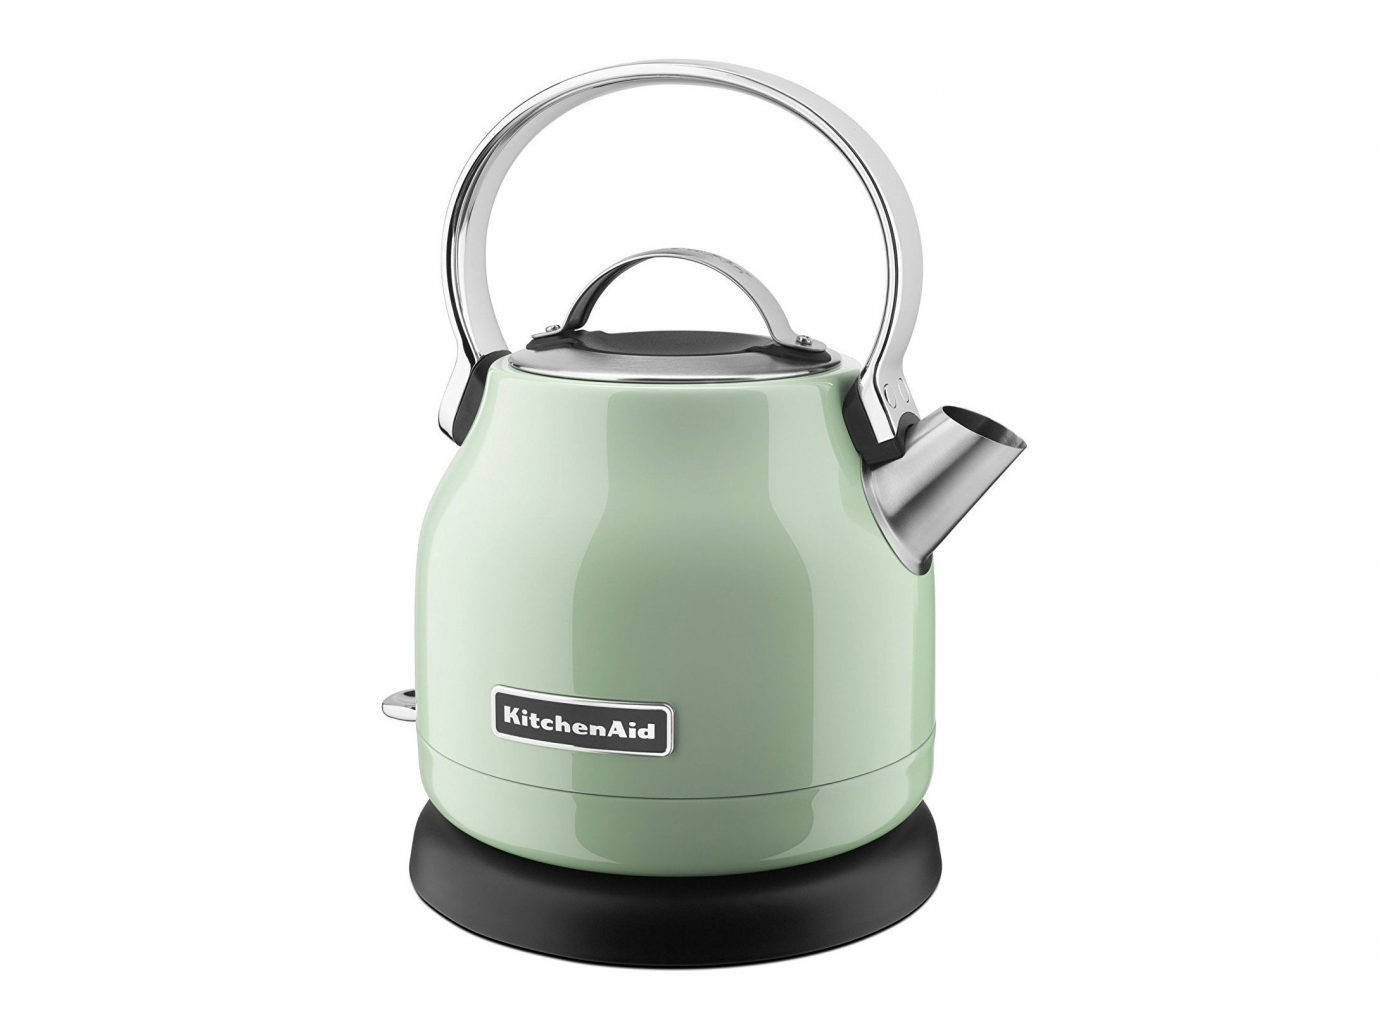 Shop KitchenAid Electric Kettle on Amazon